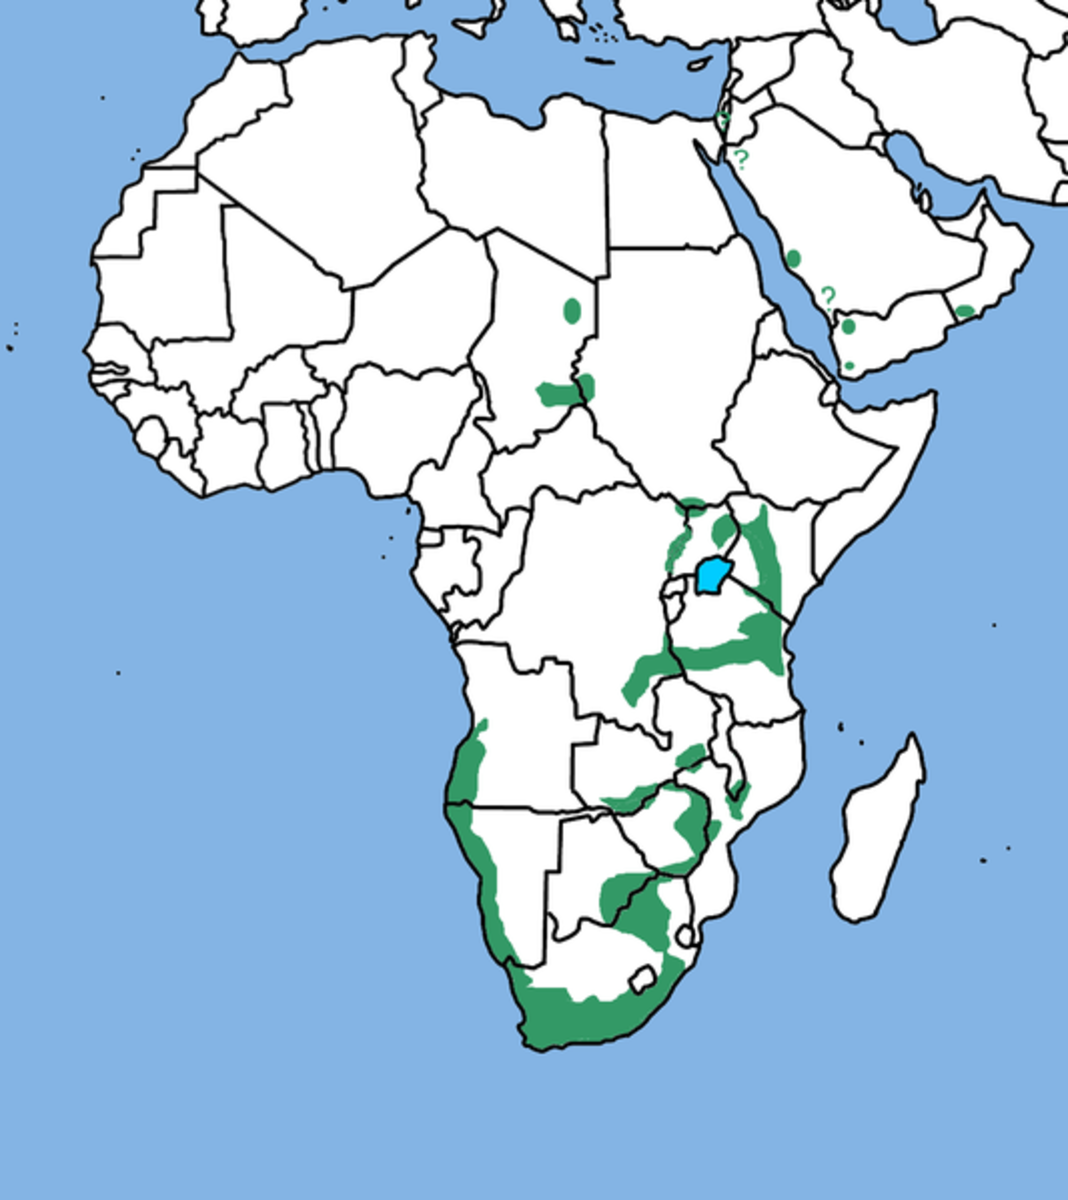 Range of Verreaux's Eagle in green